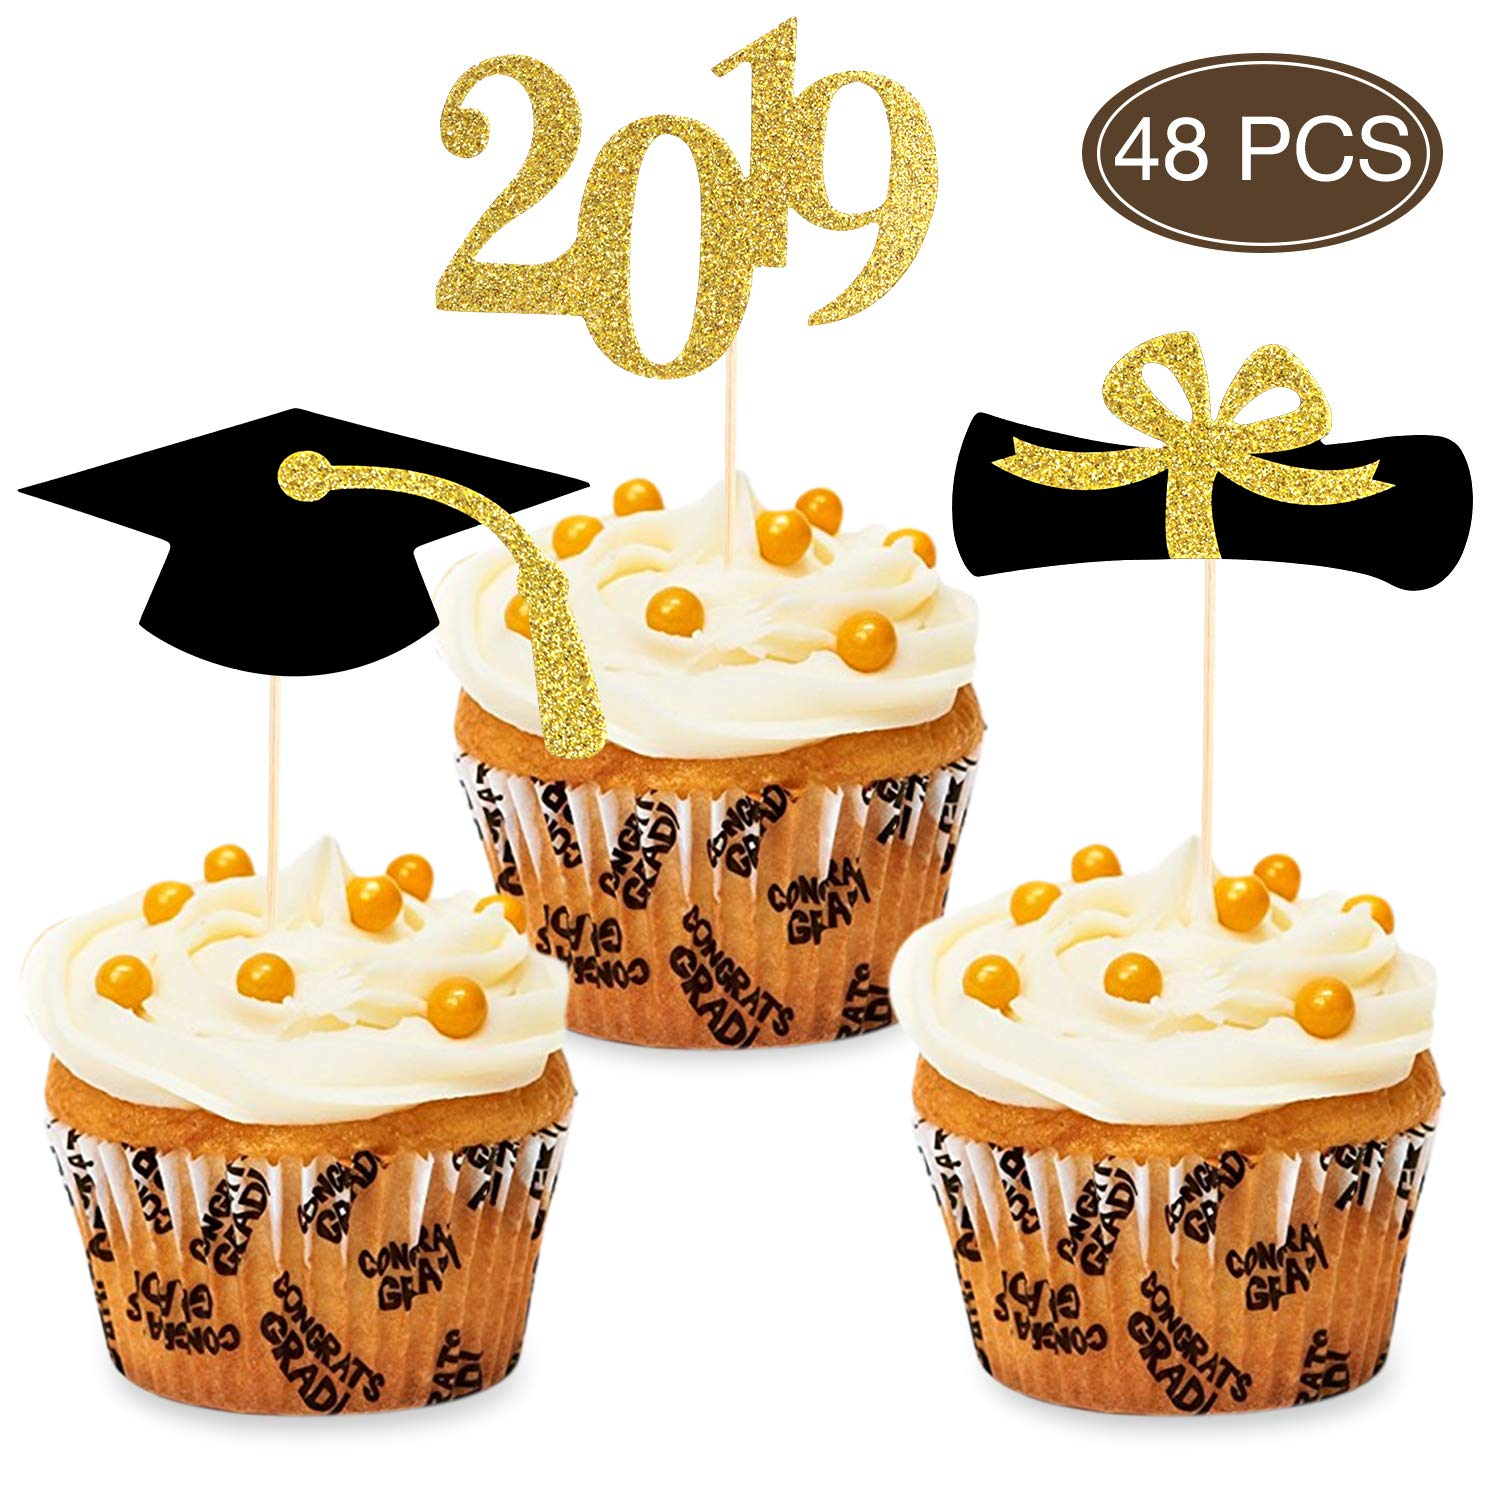 2019 Congrats Graduation Cupcake Toppers Food Appetizer Picks For Graduation Party Decorations Set Of 48